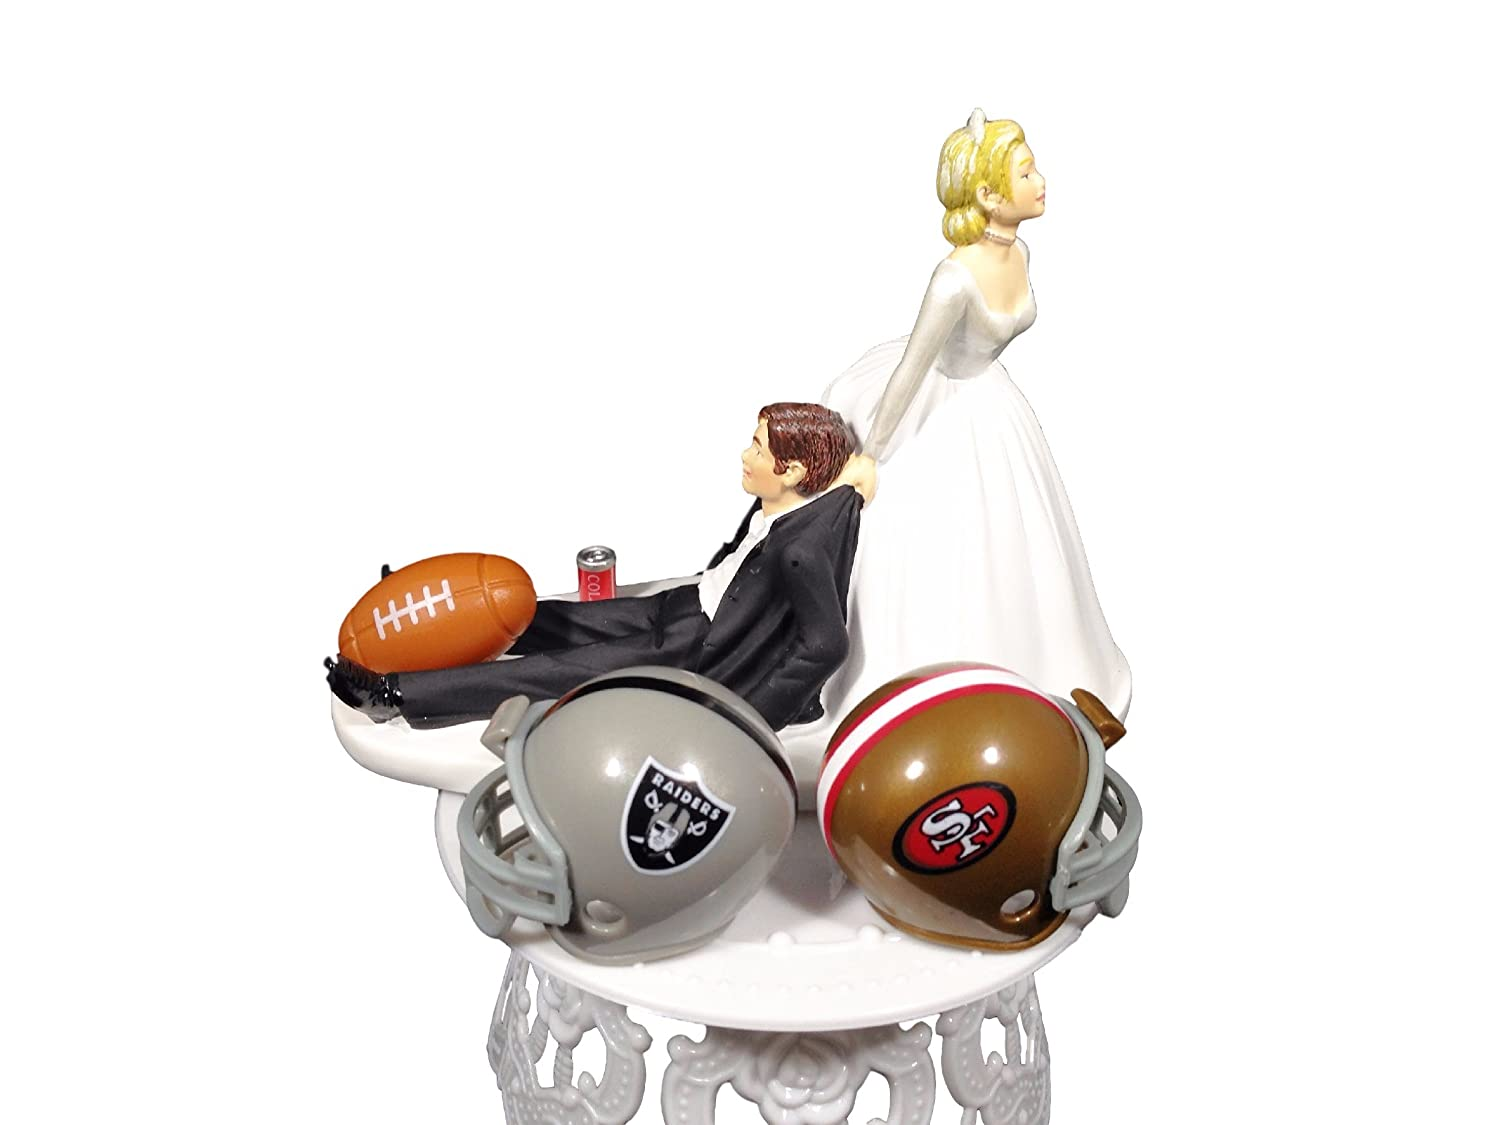 Click to buy Wedding Reception Decoration Ideas: Playful Football Wedding Couple Cake Topper customizable nfl teams from Amazon!